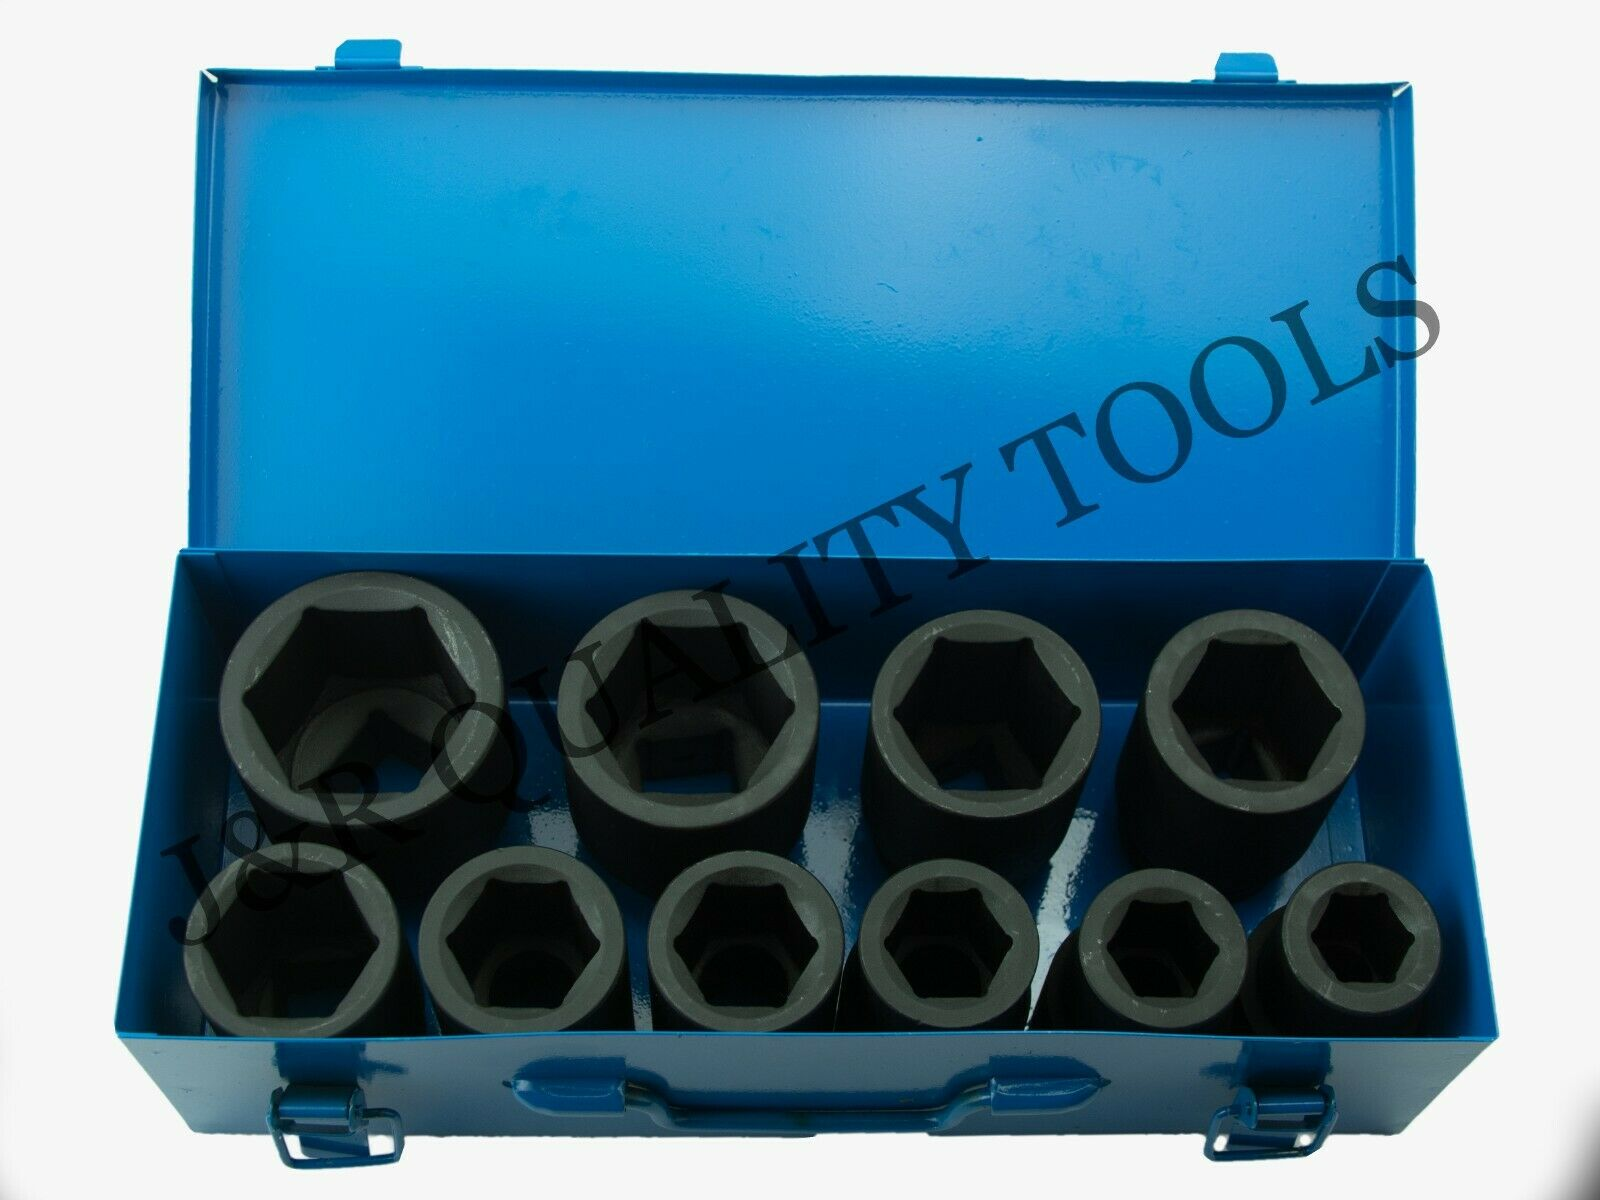 deep j-rqualitytools2011 10 PC 1 ONE INCH DRIVE DR LARGE SIZE AIR BLACK IMPACT SOCKET WRENCH TOOL SET MM